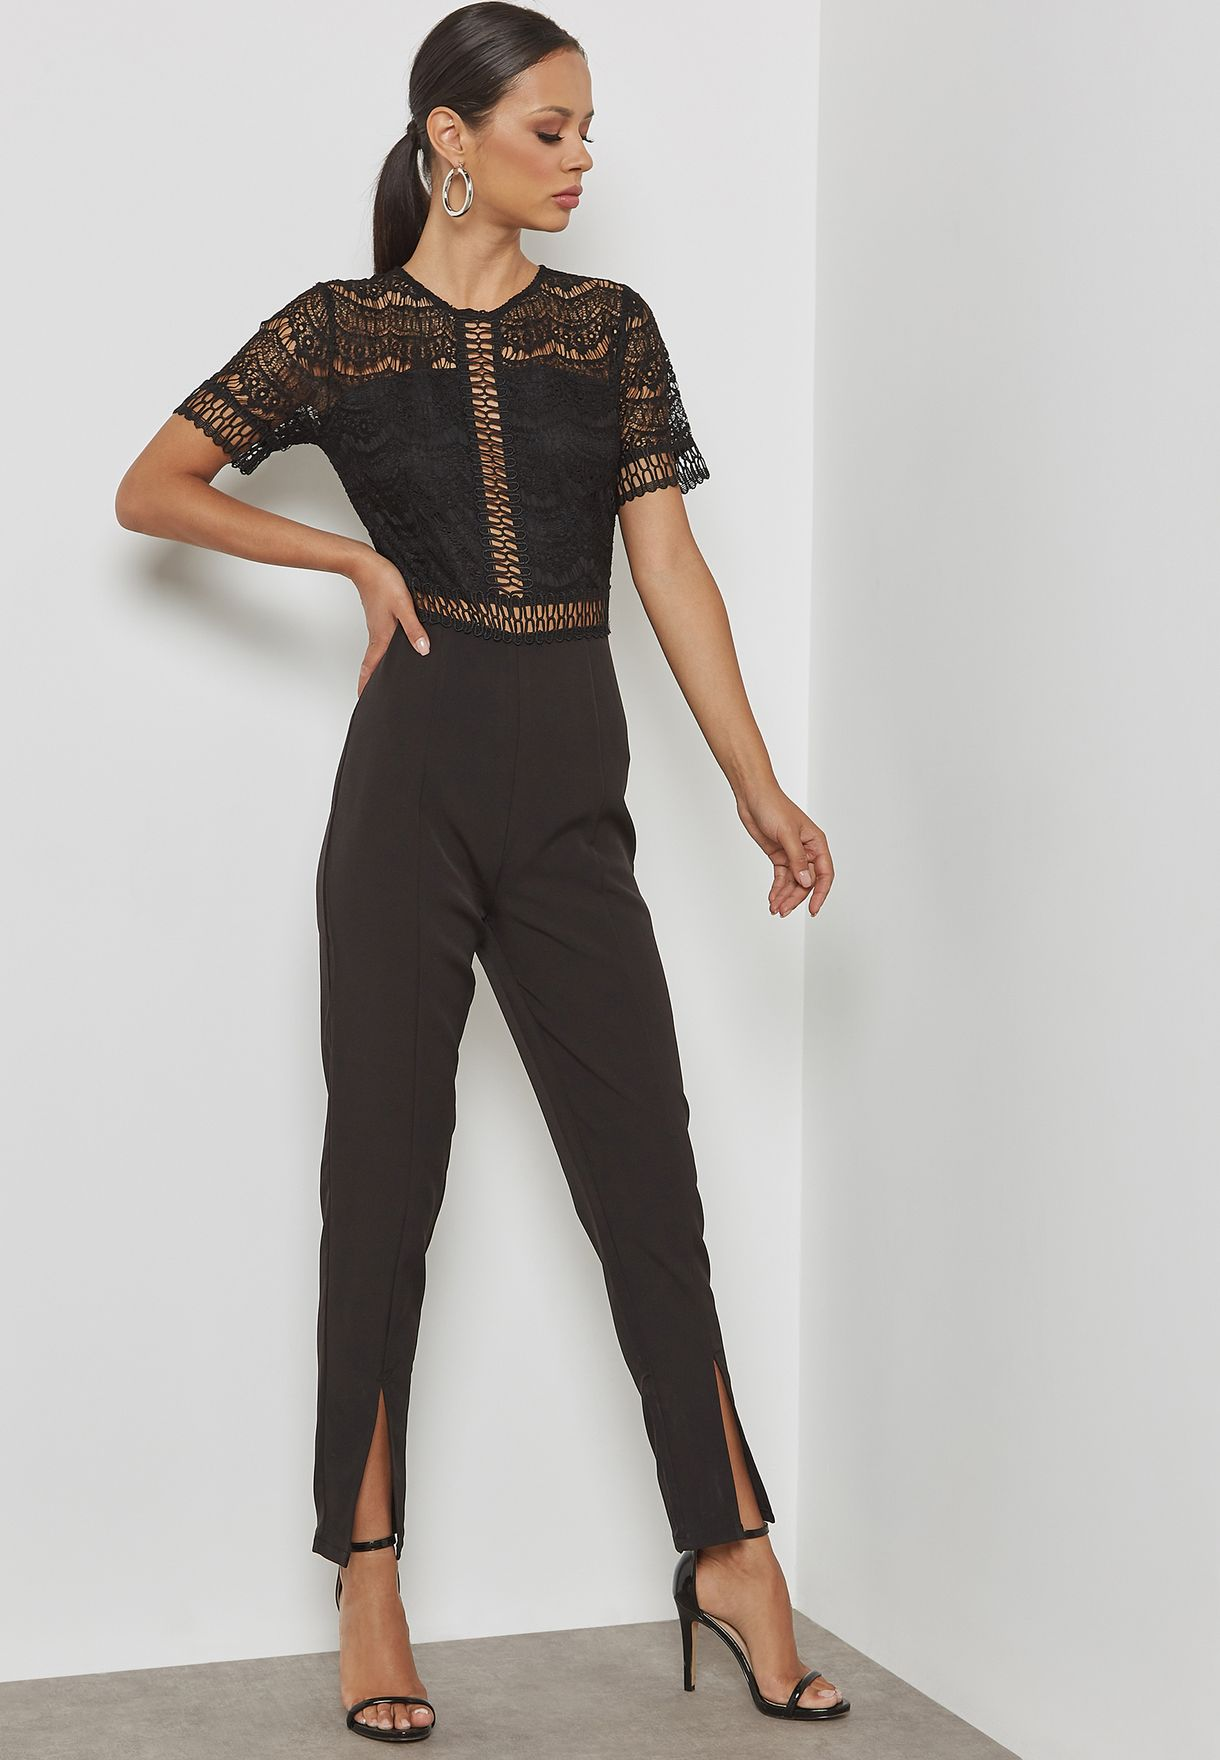 cbe9e9c27255 Shop Missguided black Lace Top Cigarette Trousers Jumpsuit WXM9903584 for  Women in Qatar - MI669AT28CBV